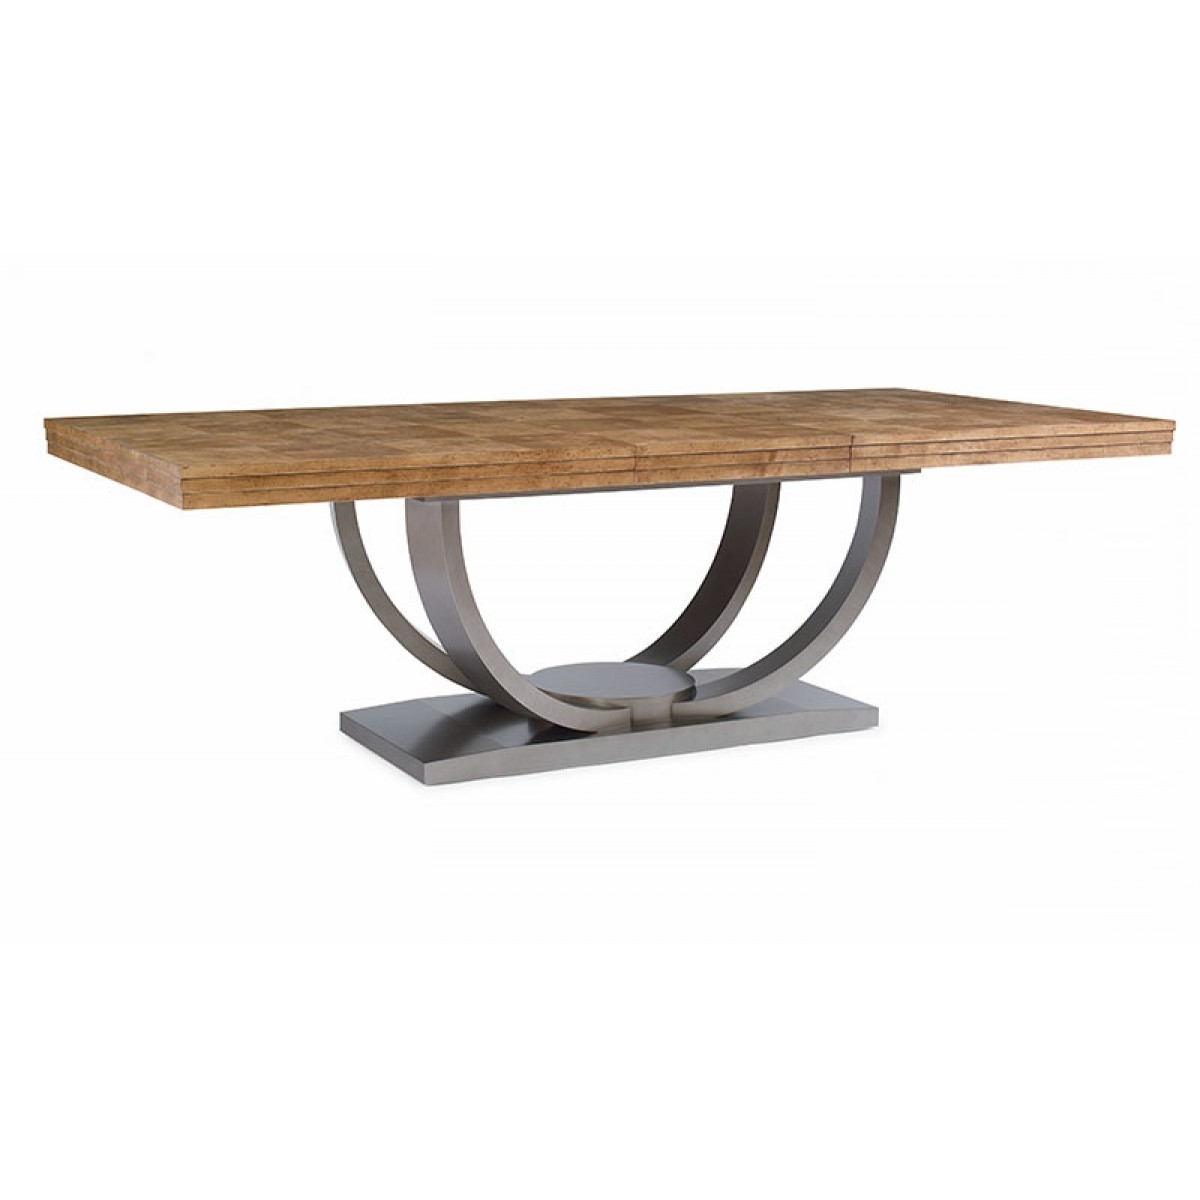 Century Dining Table With Acrylic Legs Within Popular Acrylic Dining Tables (View 12 of 25)